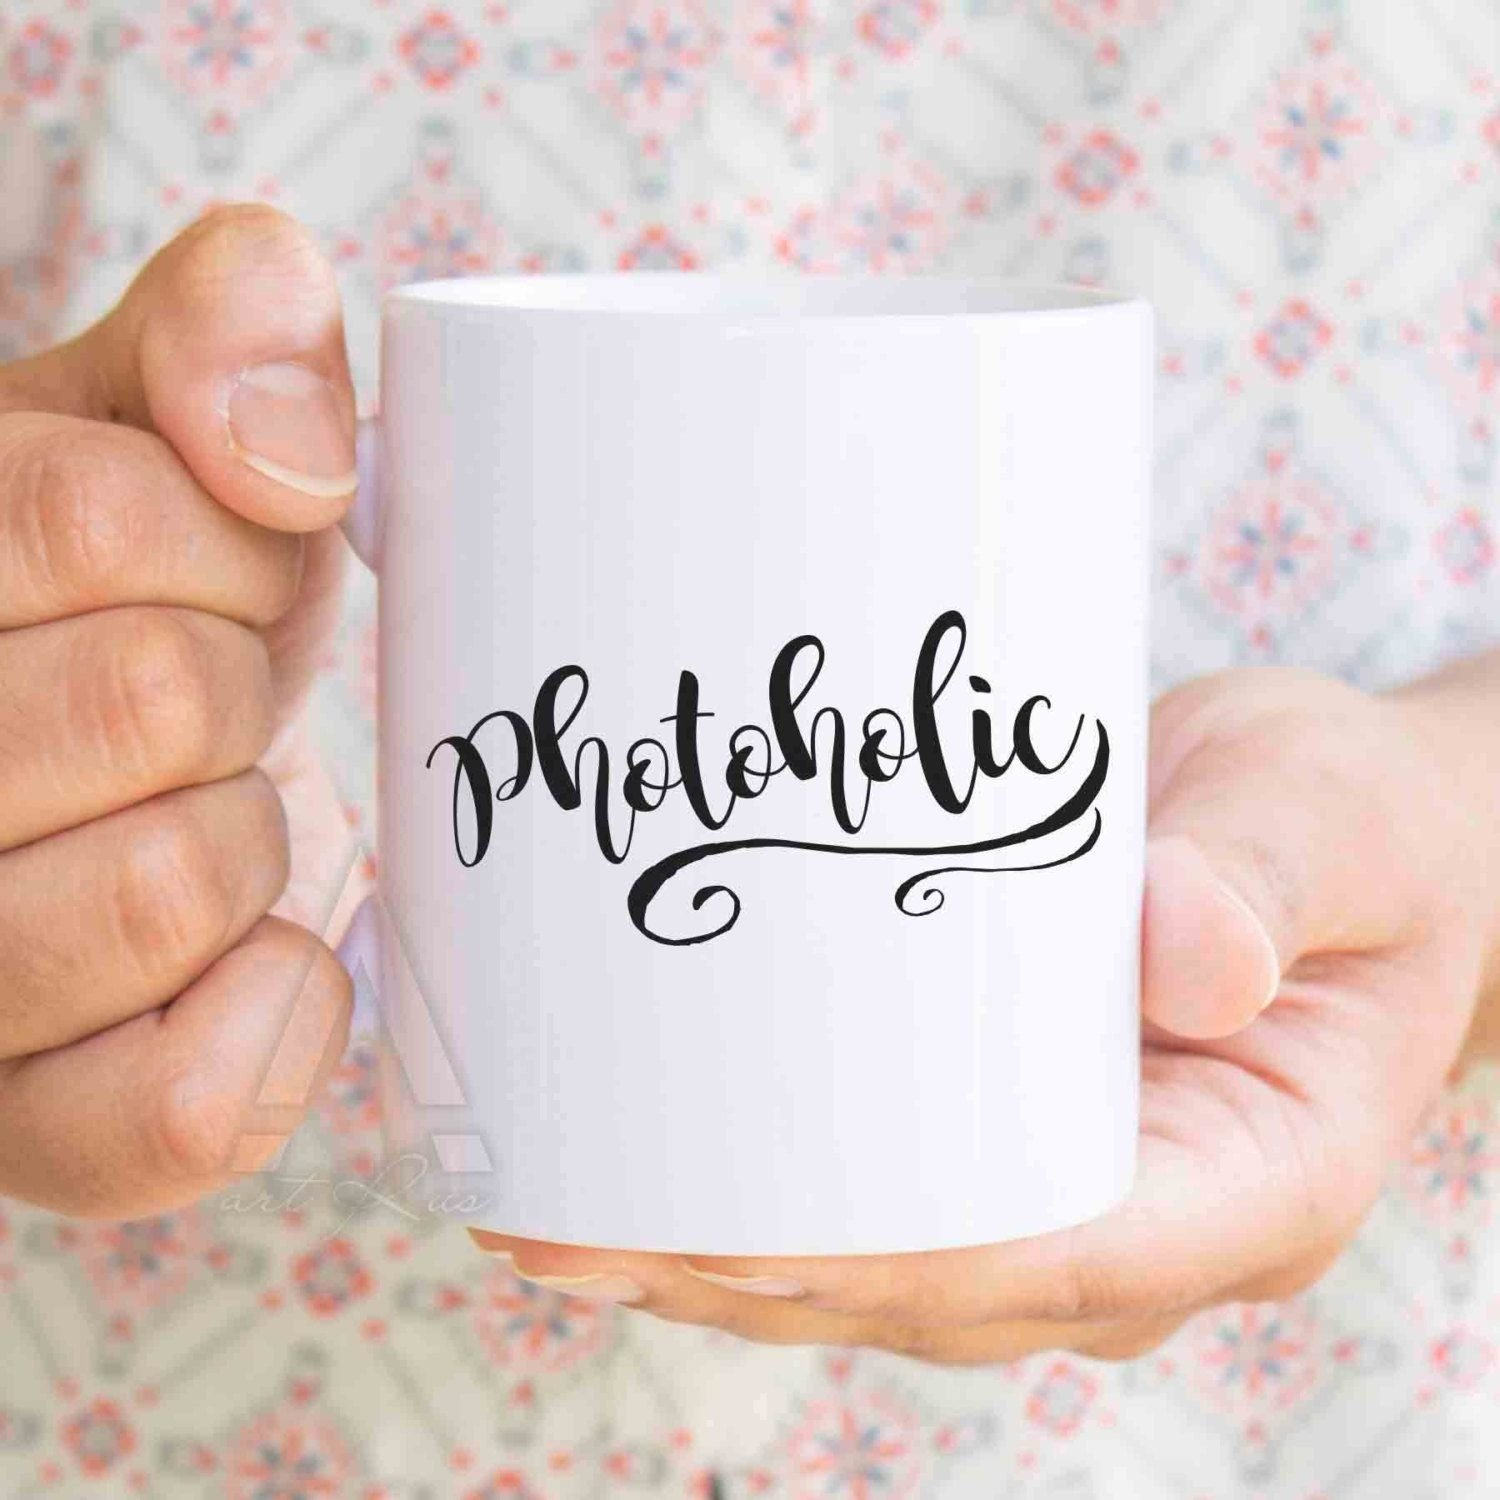 10 Fashionable Gift Ideas For Photography Lovers photoholic funny photography mug gifts for photographers 2020